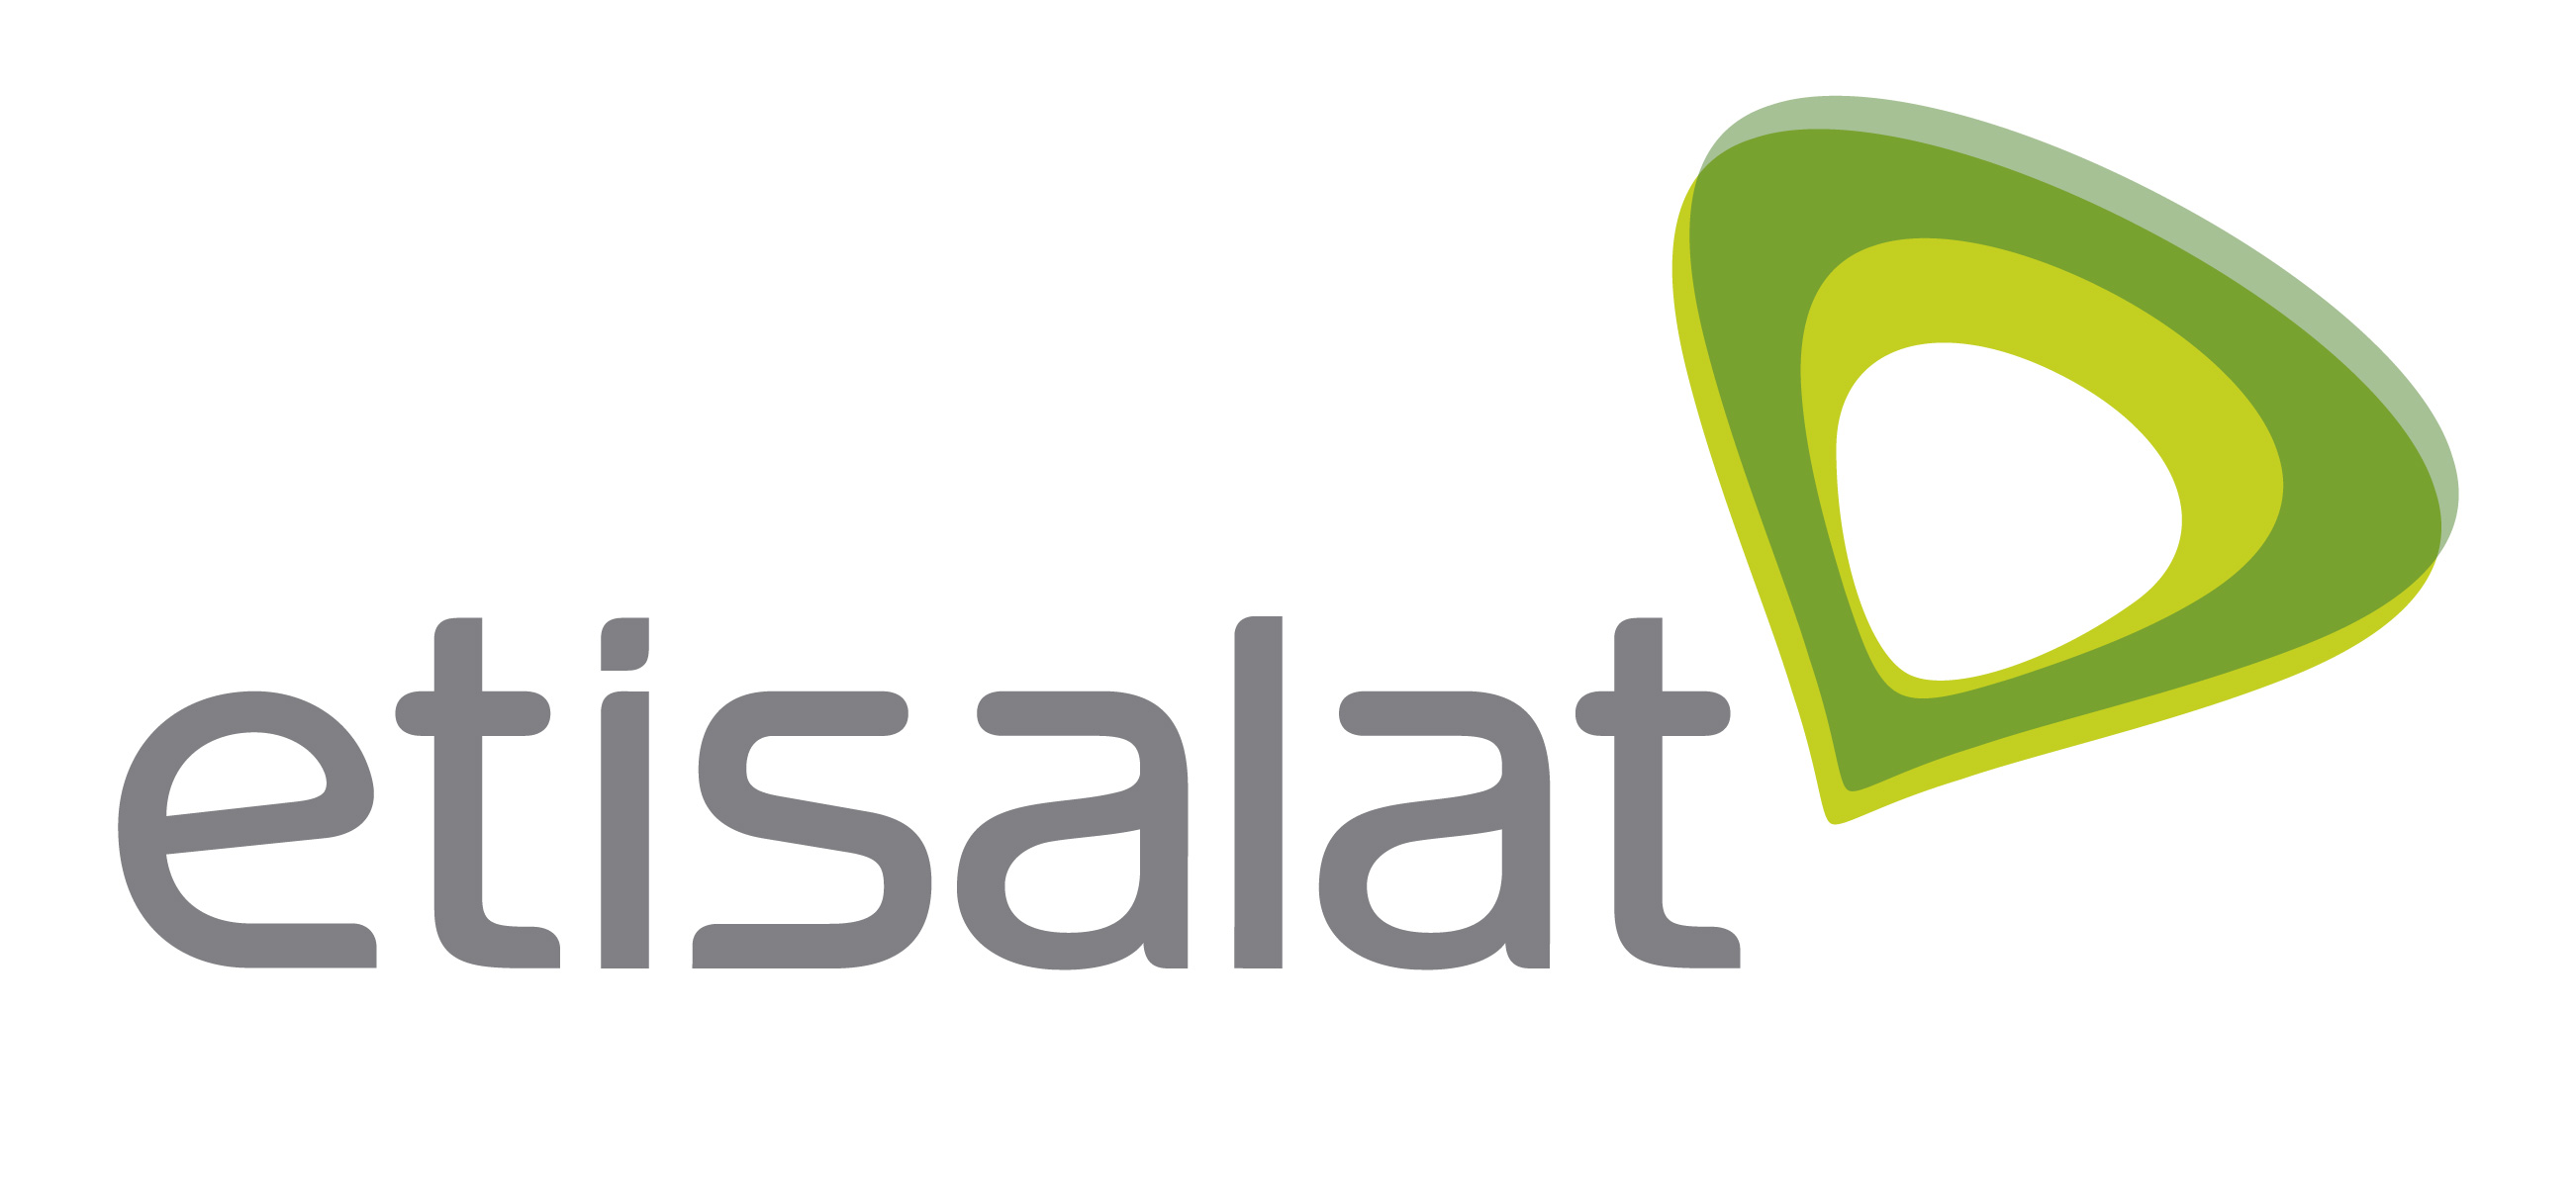 Etisalat Nigeria Data Plans, Activation Codes & Price